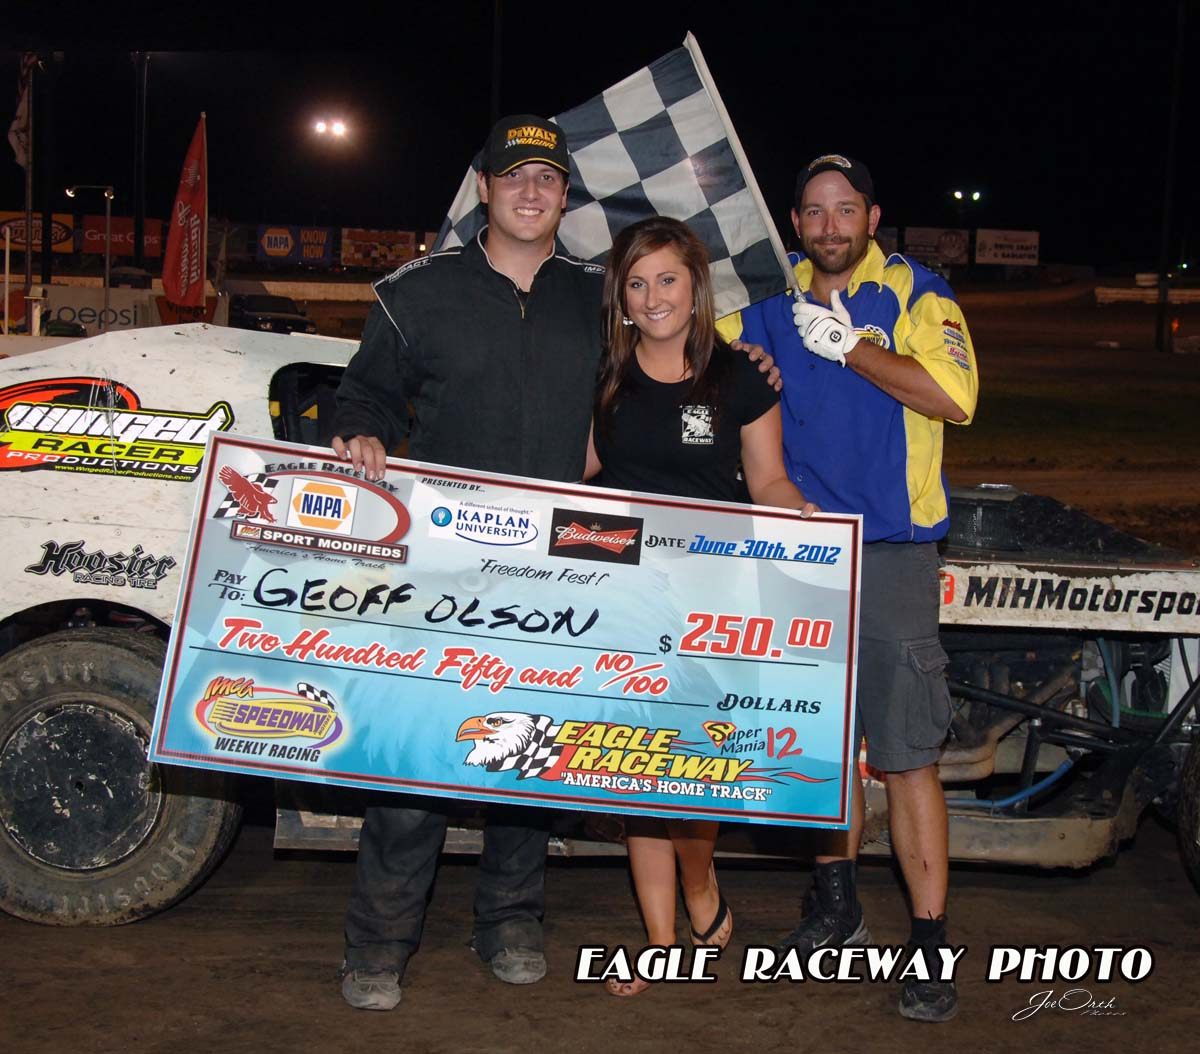 eagle-06-30-12-406-geoff-olson-with-jamie-kromberg-and-flagman-billy-lloyd